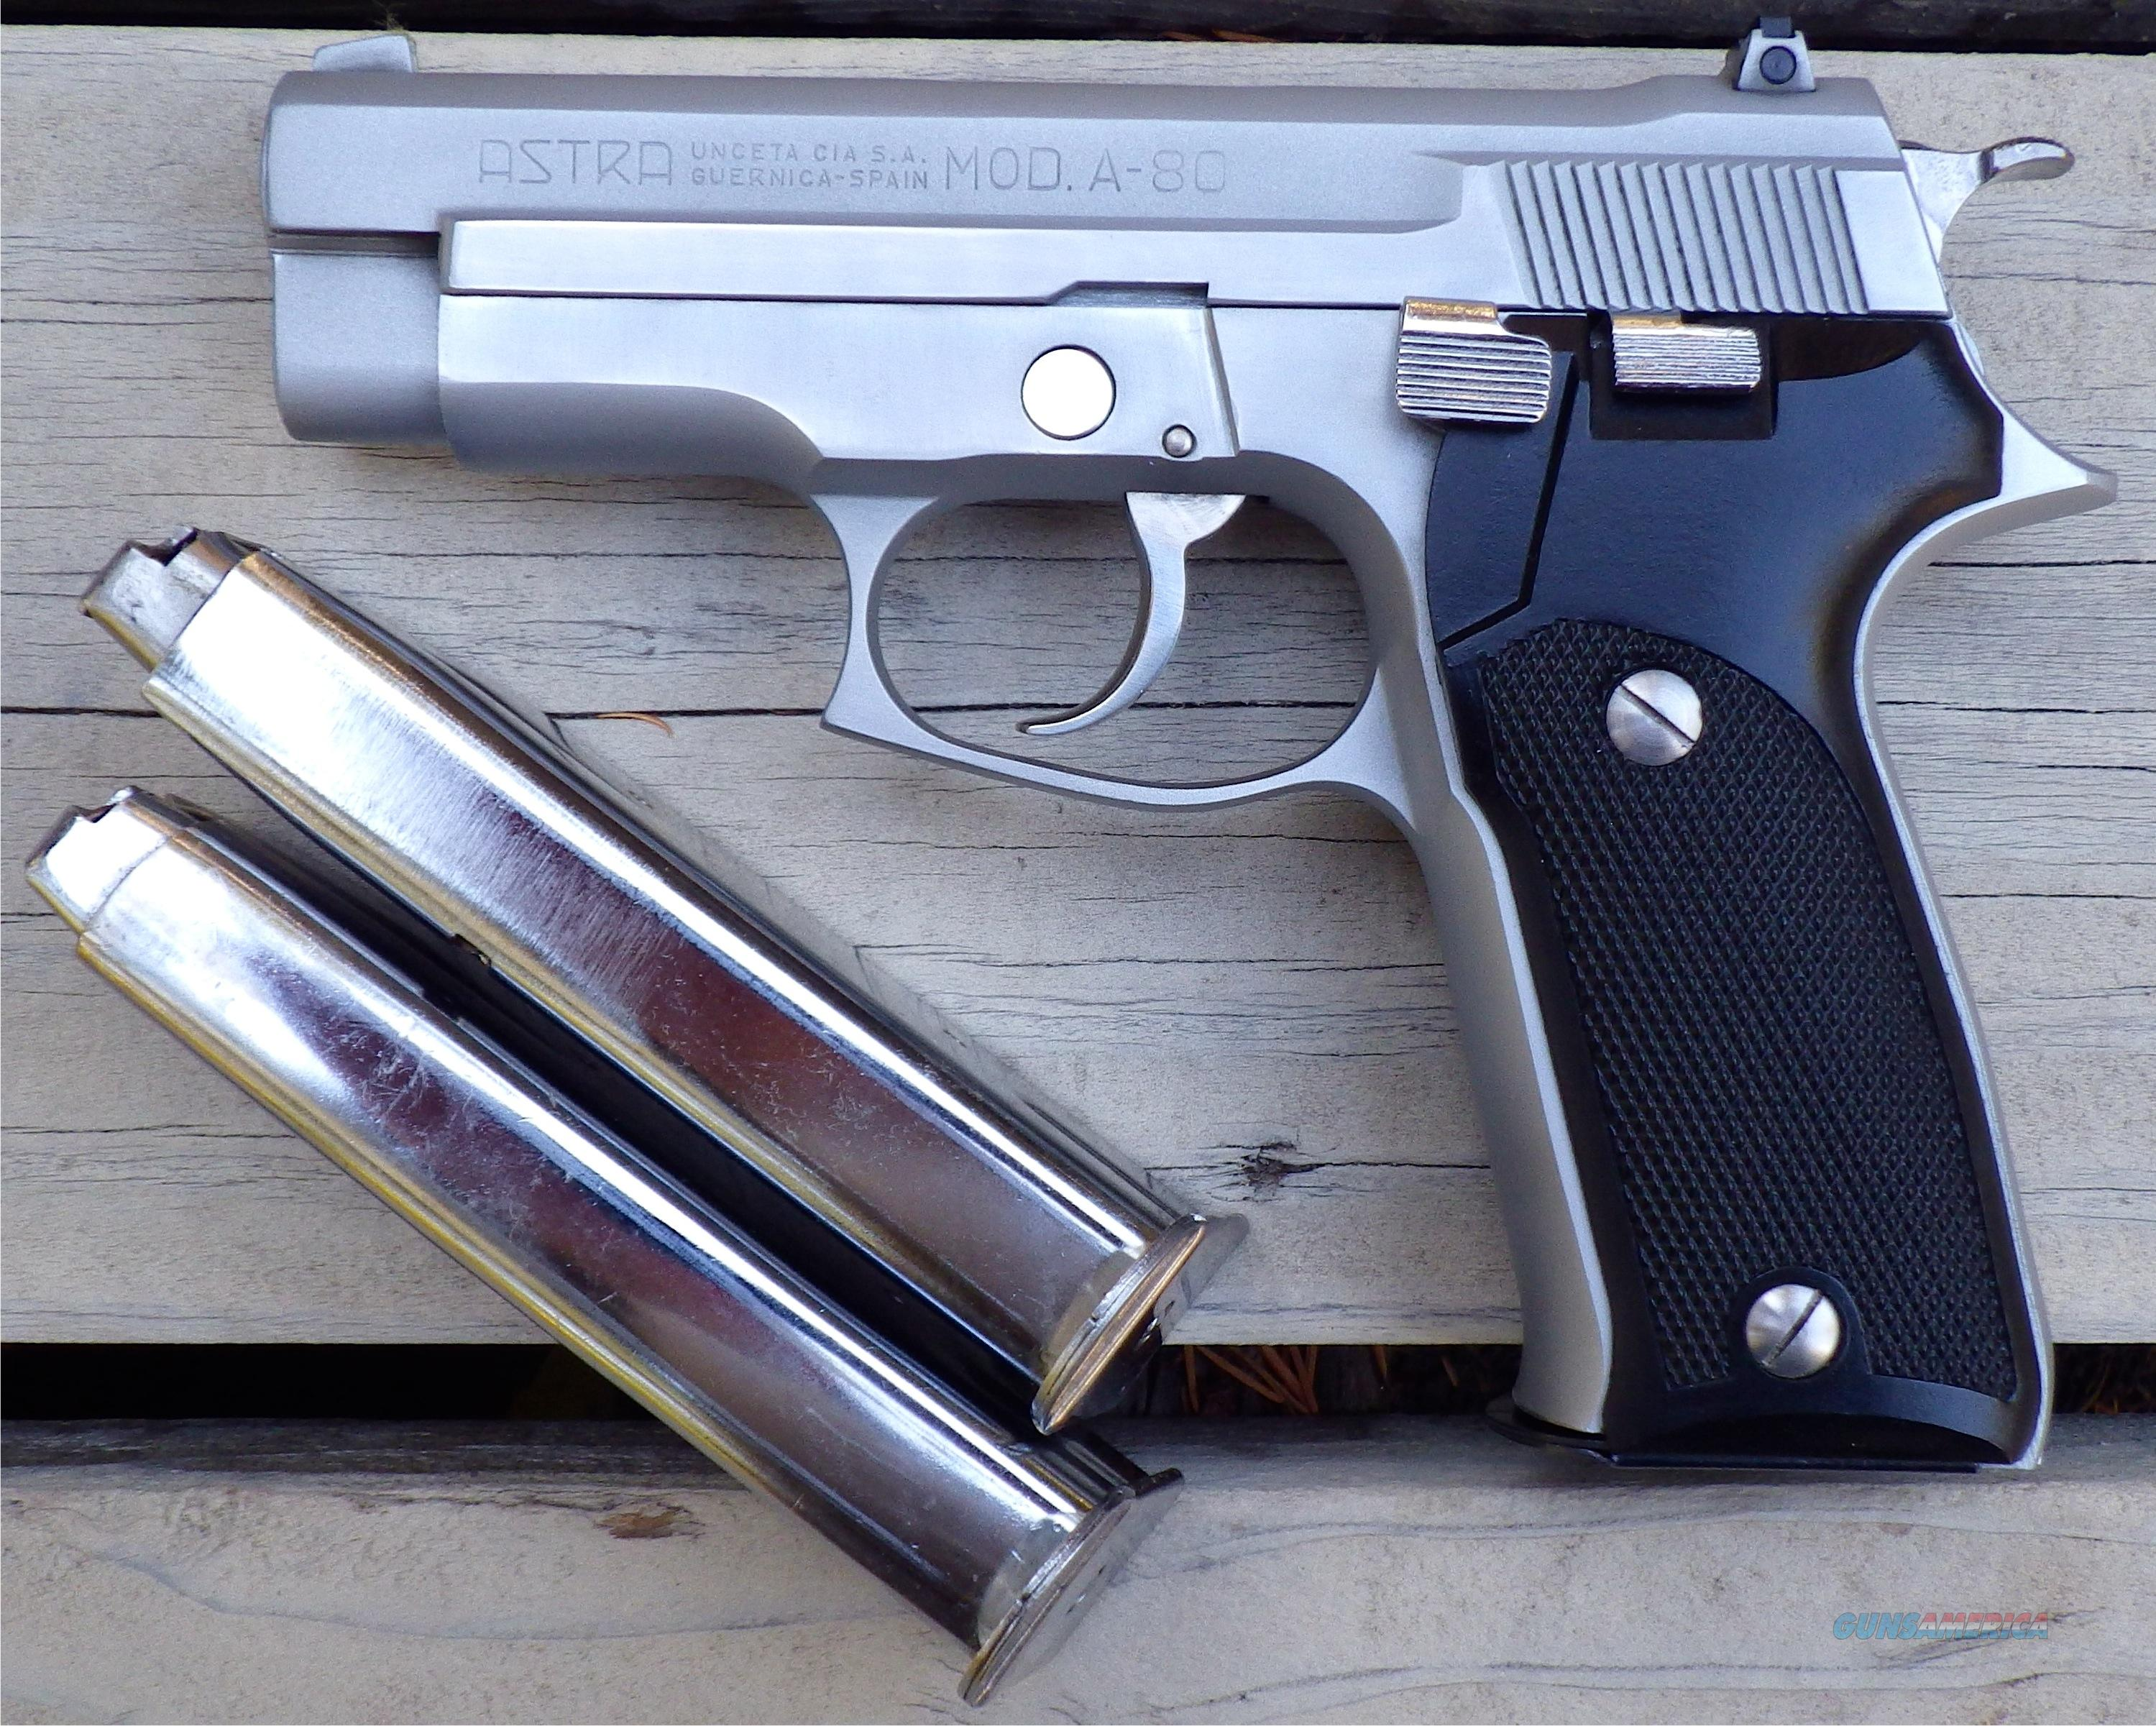 Astra A-80 .45 ACP double action, chrome or stainless, 3 magazines  Guns > Pistols > Astra Pistols